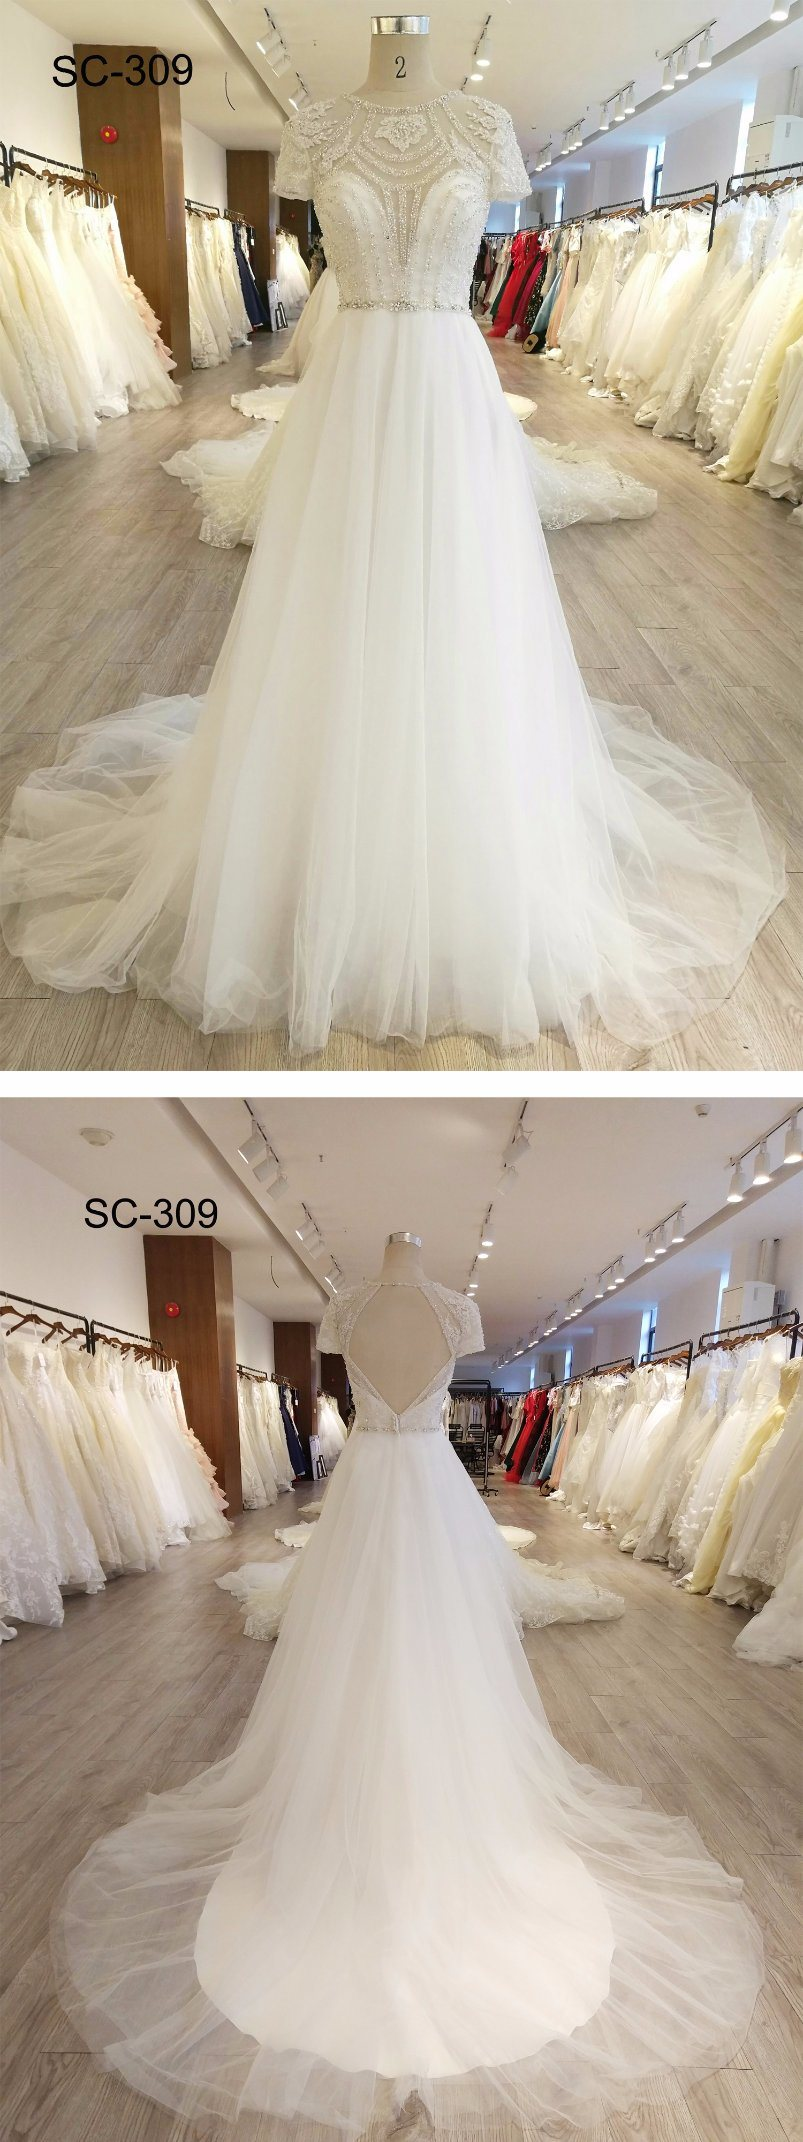 New Arrival Lace Fabric Ivory Women Wedding Dress